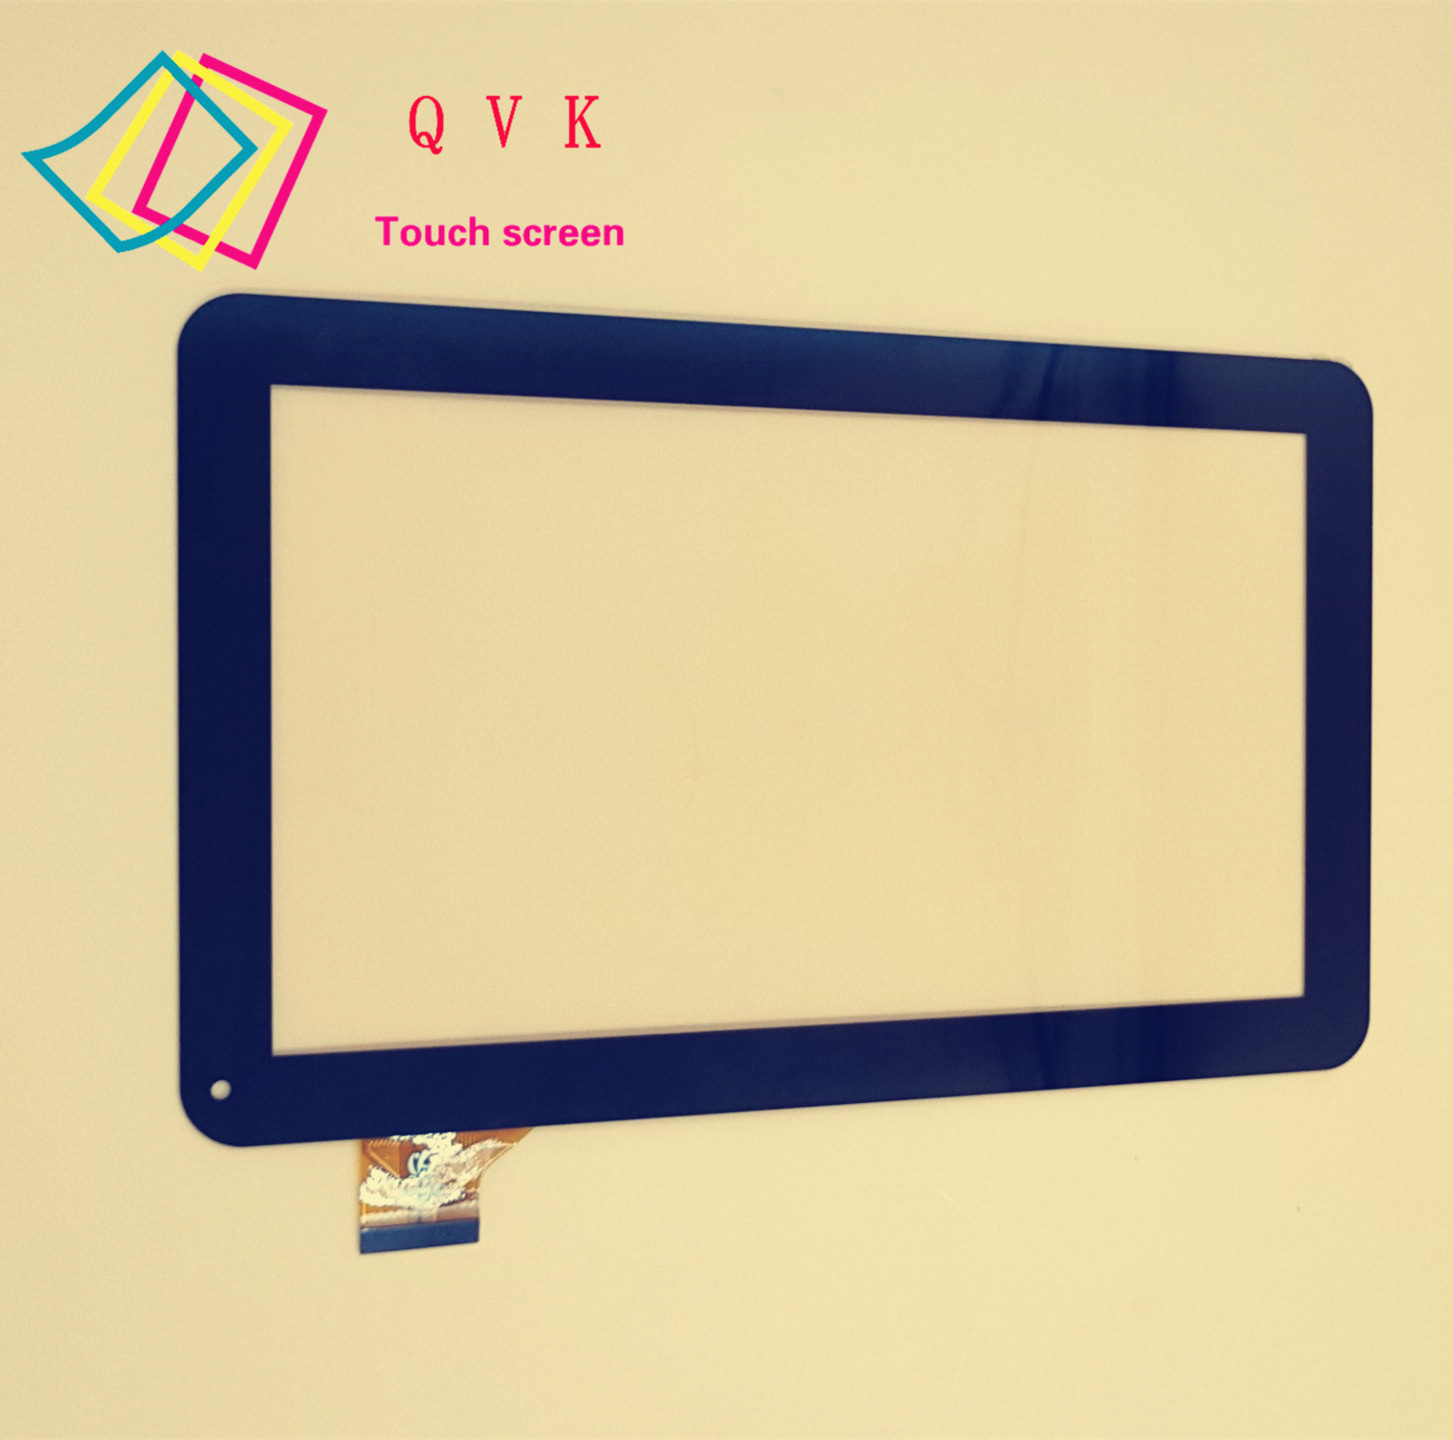 10.1inch for Irbis TX58 TX59 tablet pc external capacitive touch screen capacitance panel 10 1inch ycf0464 a ycf0464 for oysters t12 t12d t12v 3g tablet pc external capacitive touch screen capacitance panel